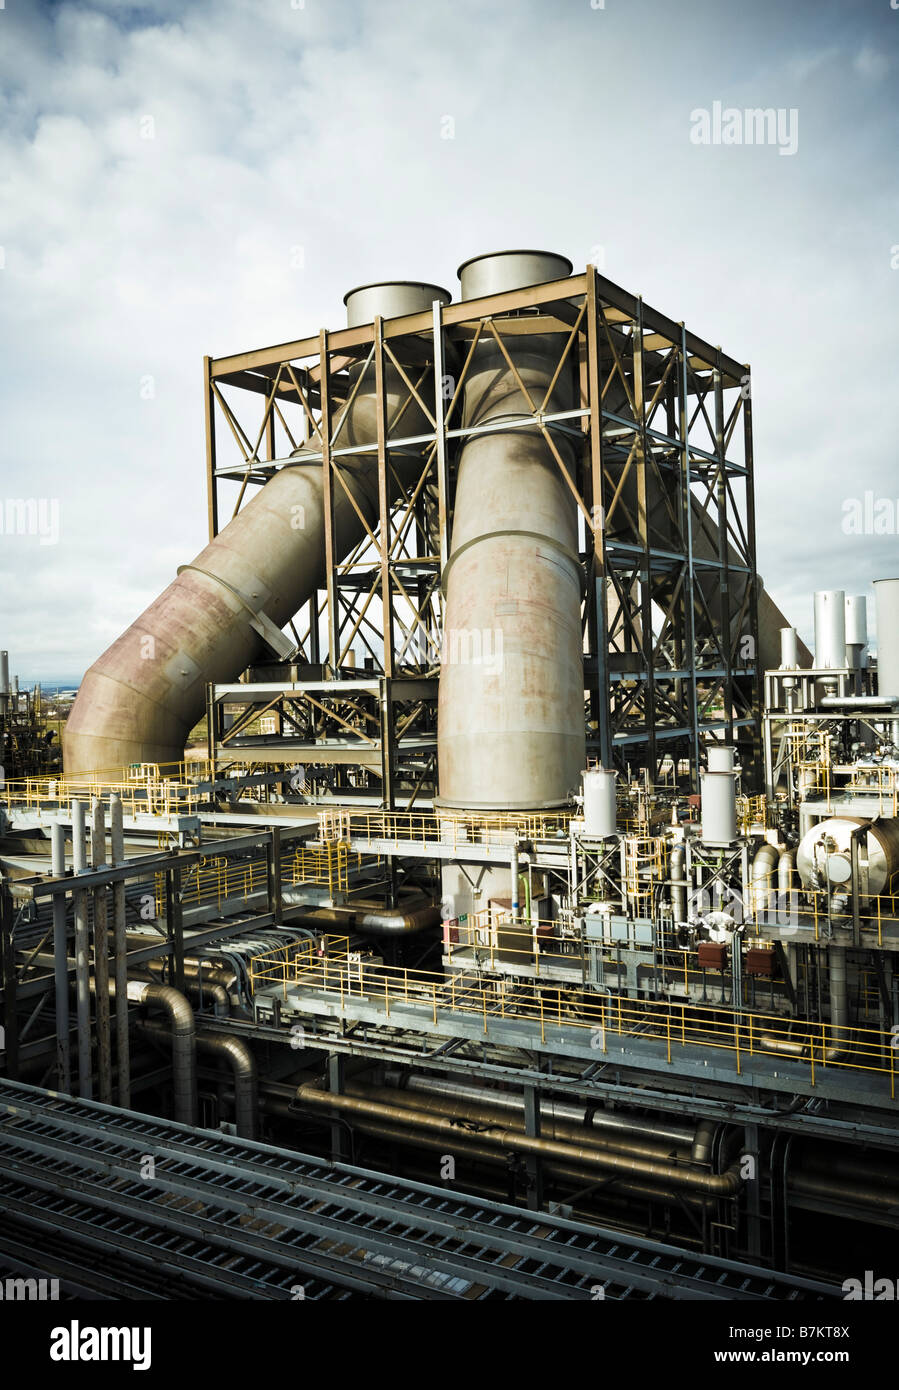 Power Station UK, gas fired power plant in England, UK - Stock Image